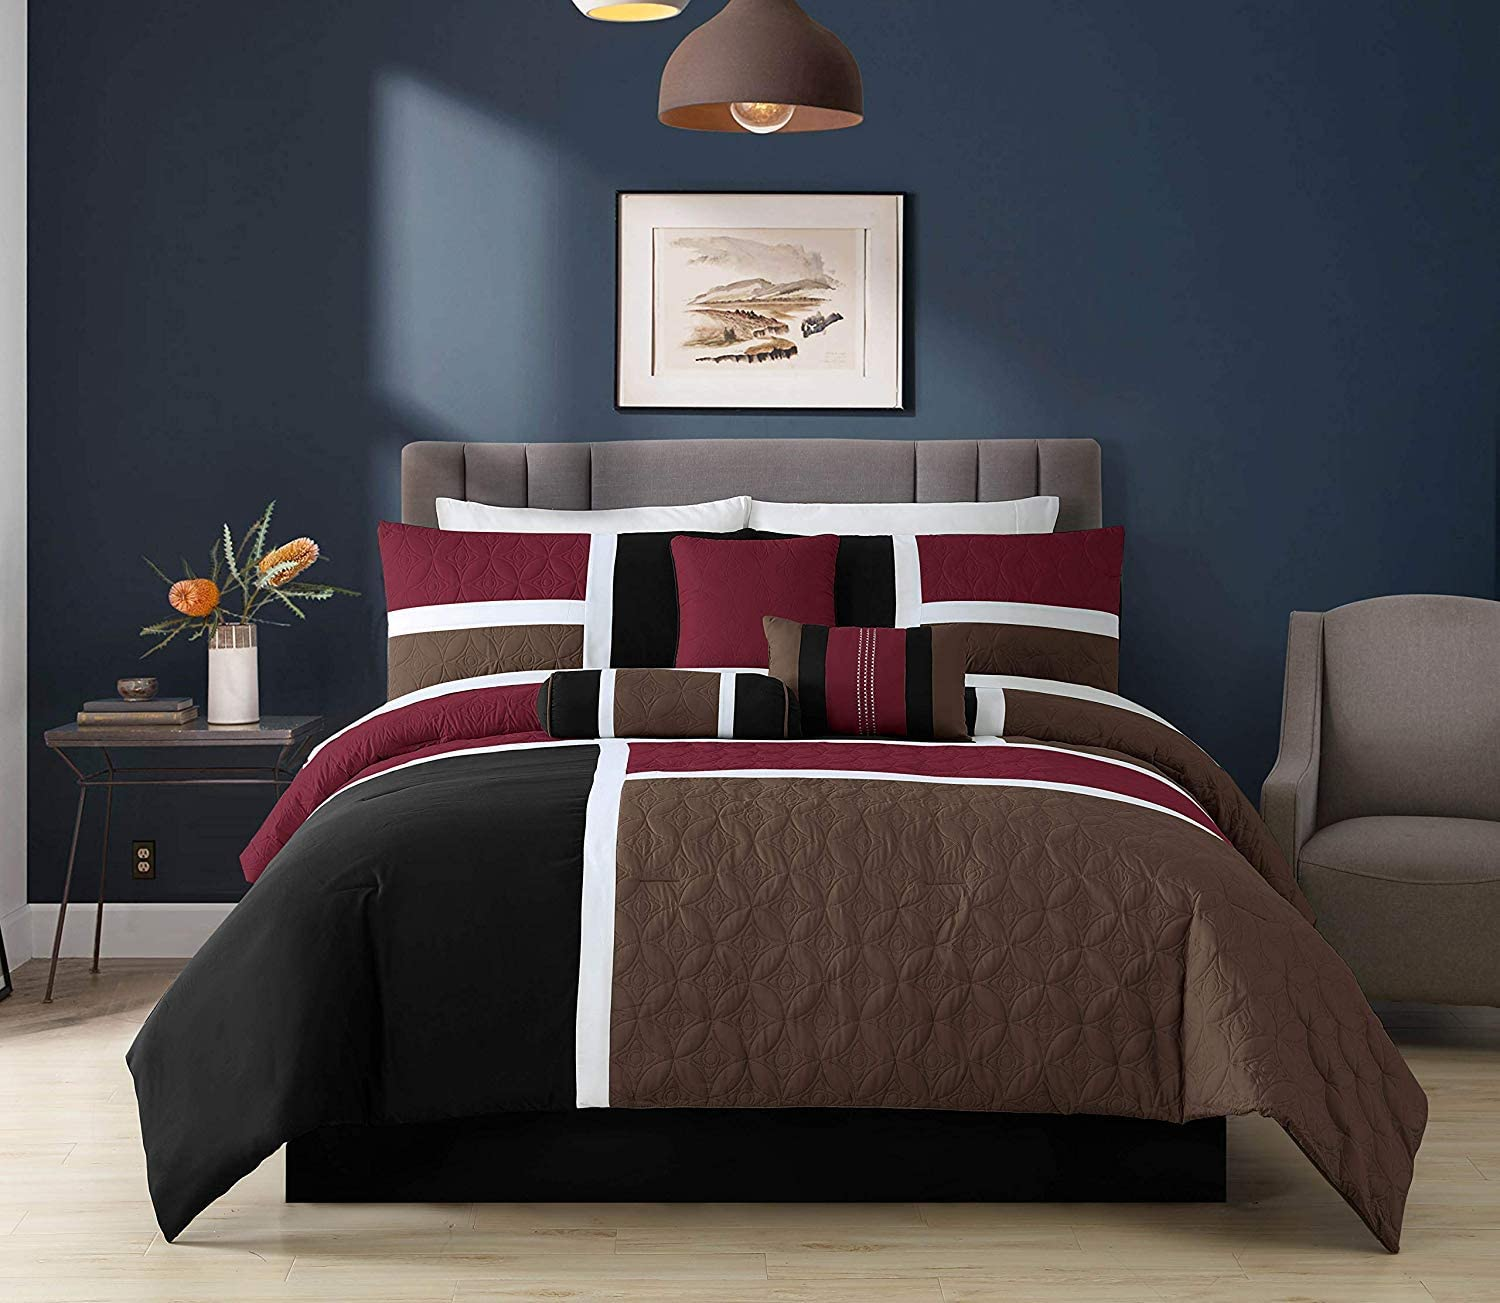 Full, Burgundy//Brown//Black Chezmoi Collection 7-Piece Quilted Patchwork Comforter Set